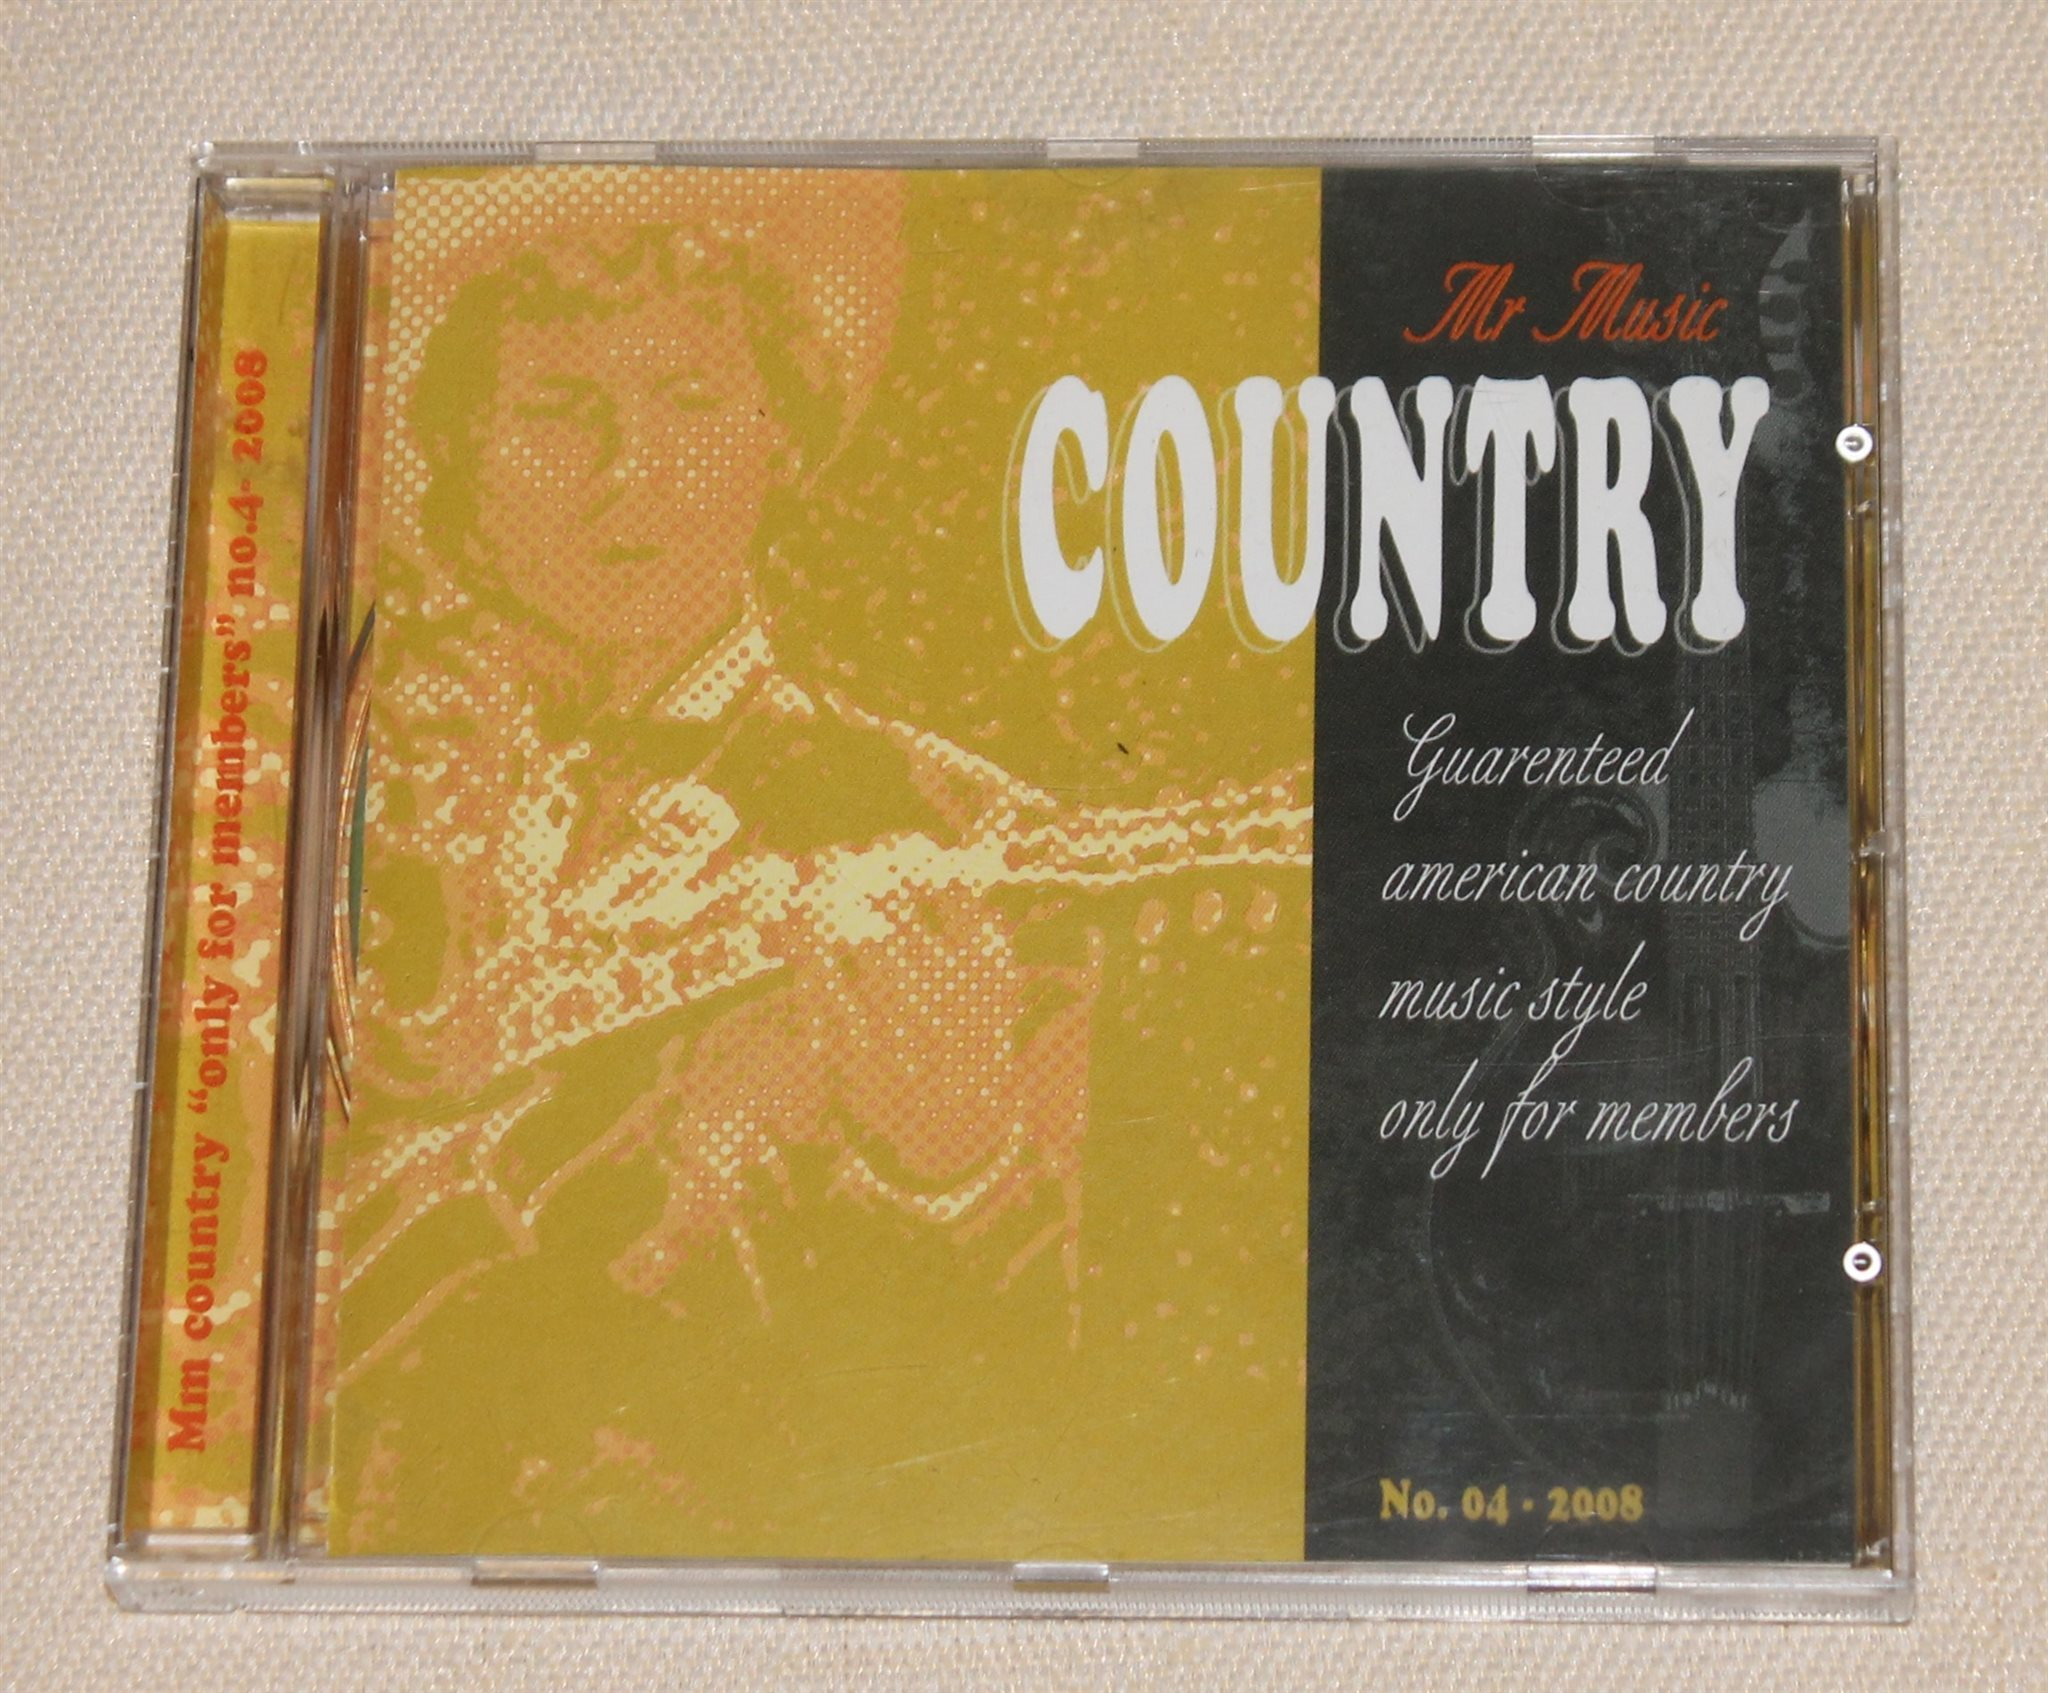 Mr Music Country No04 2008 CD 335912841 Kp P Tradera